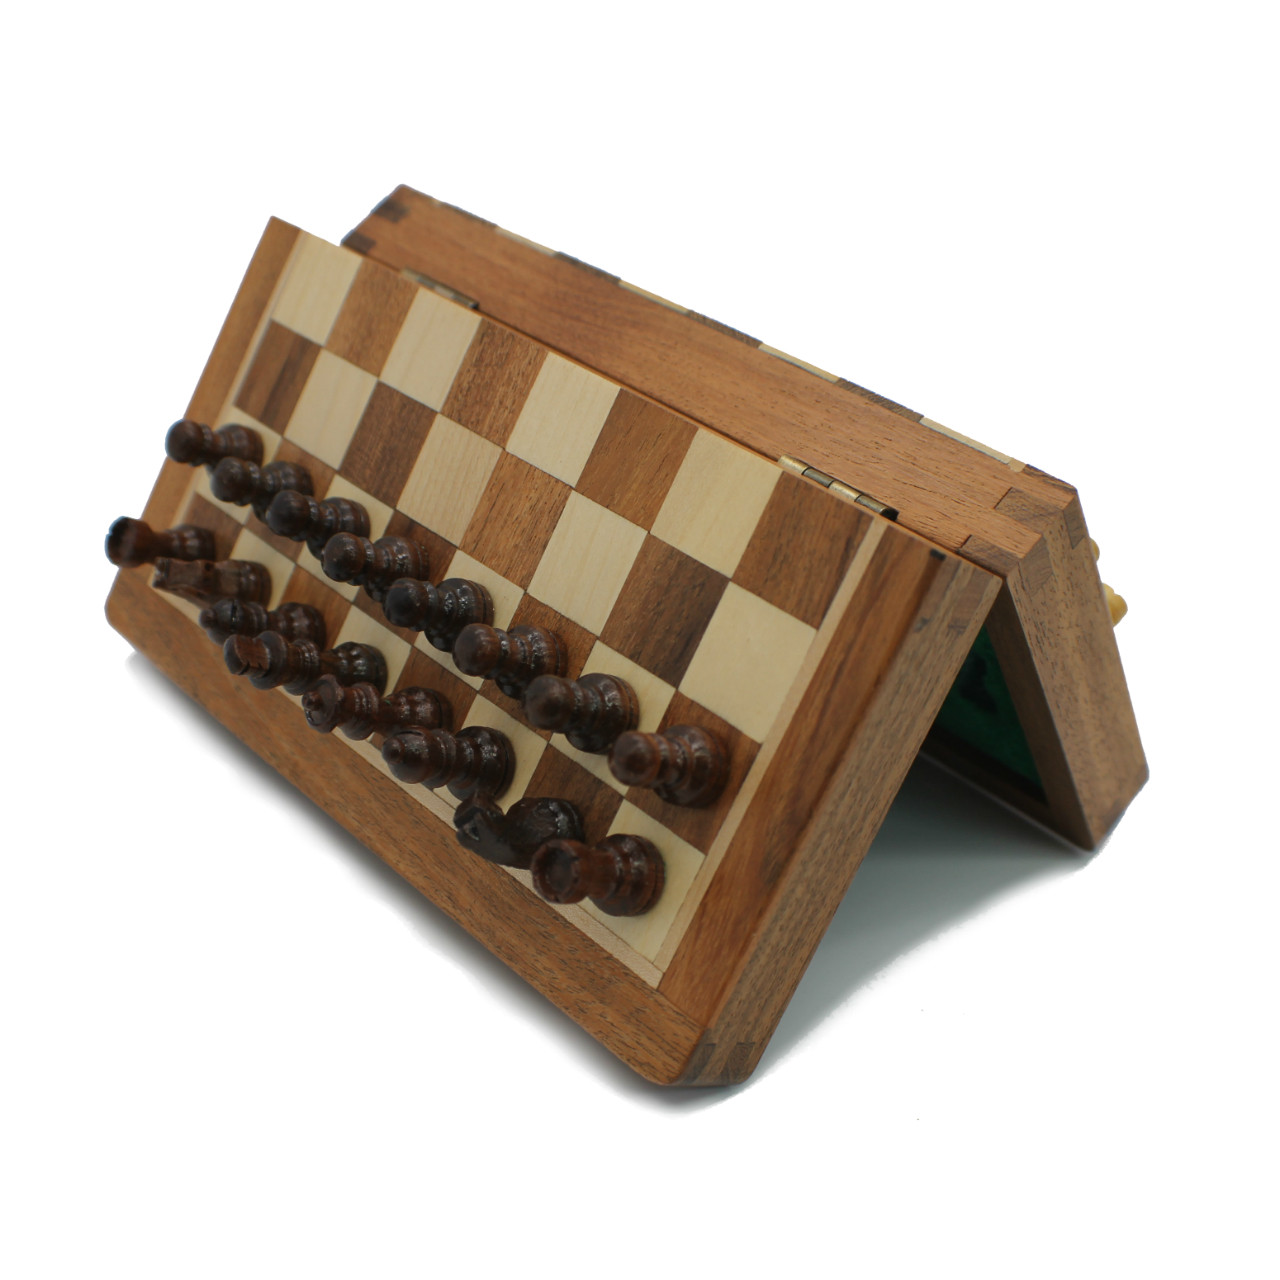 "Rex Noir 18cm / 7"" Flip Magnetic Travel Chess Set (FLI-S-18)"